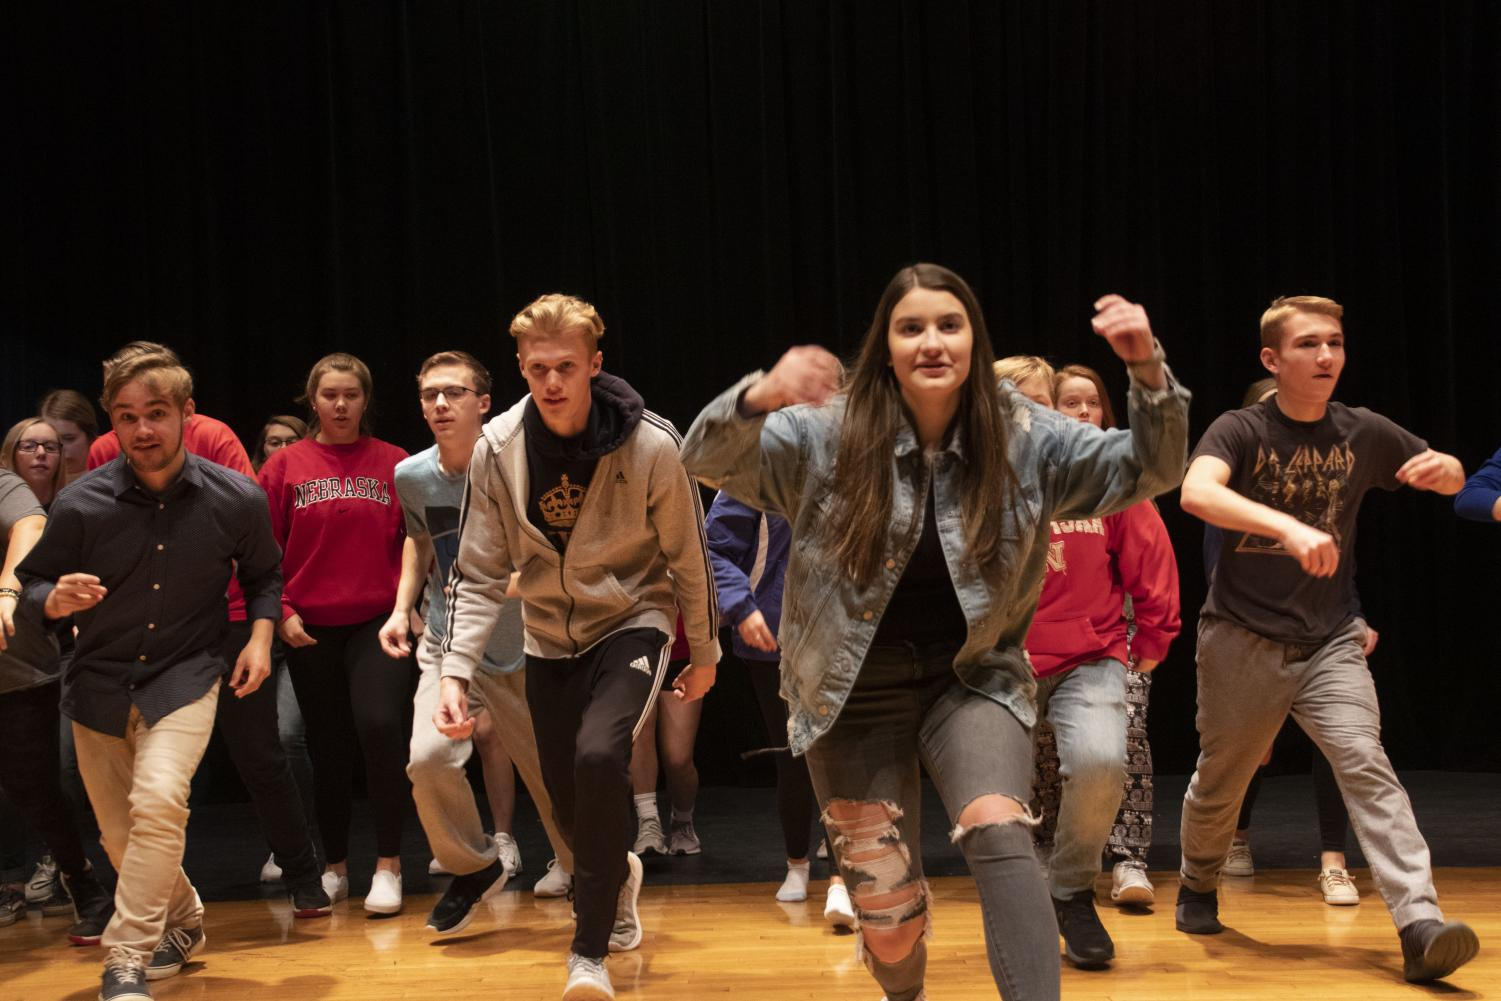 Actor Joel Bradley is practicing choreography behind Ciera Carlson. Carlson is helping the cast keep on time to the music by snapping.